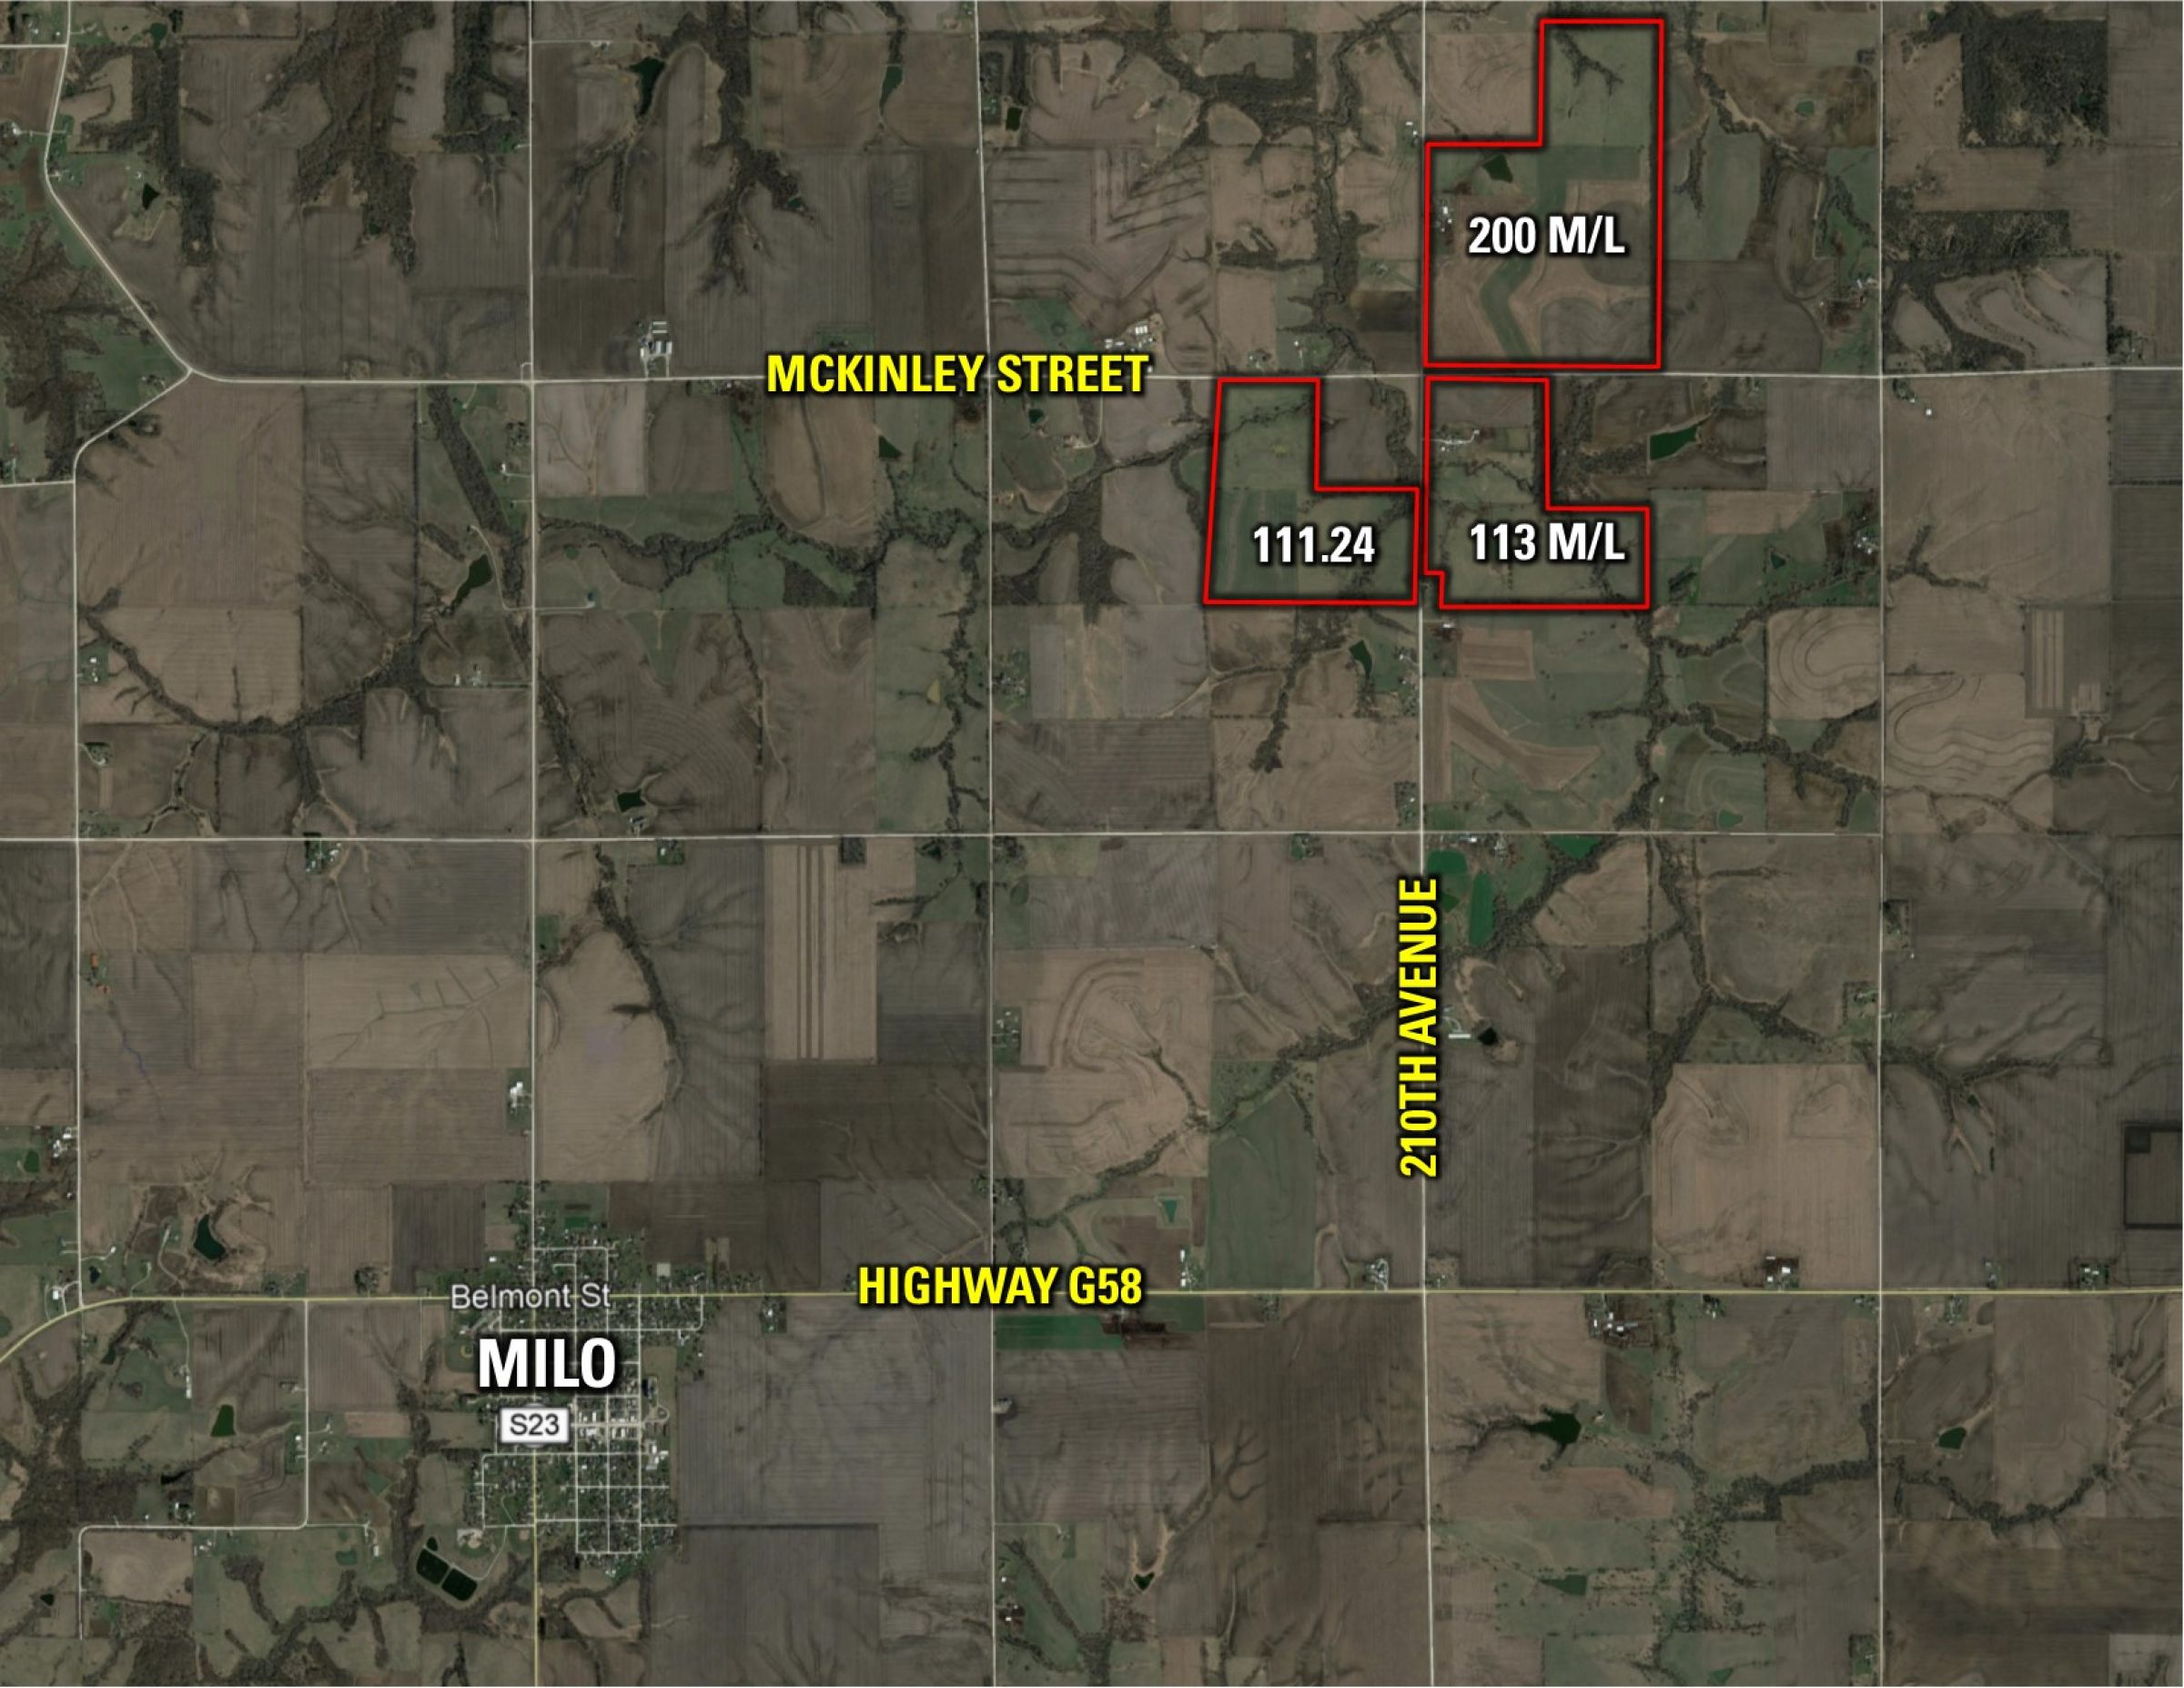 Peoples Company land for sale in Warren County IA_McKinley St. Milo,IA 50166